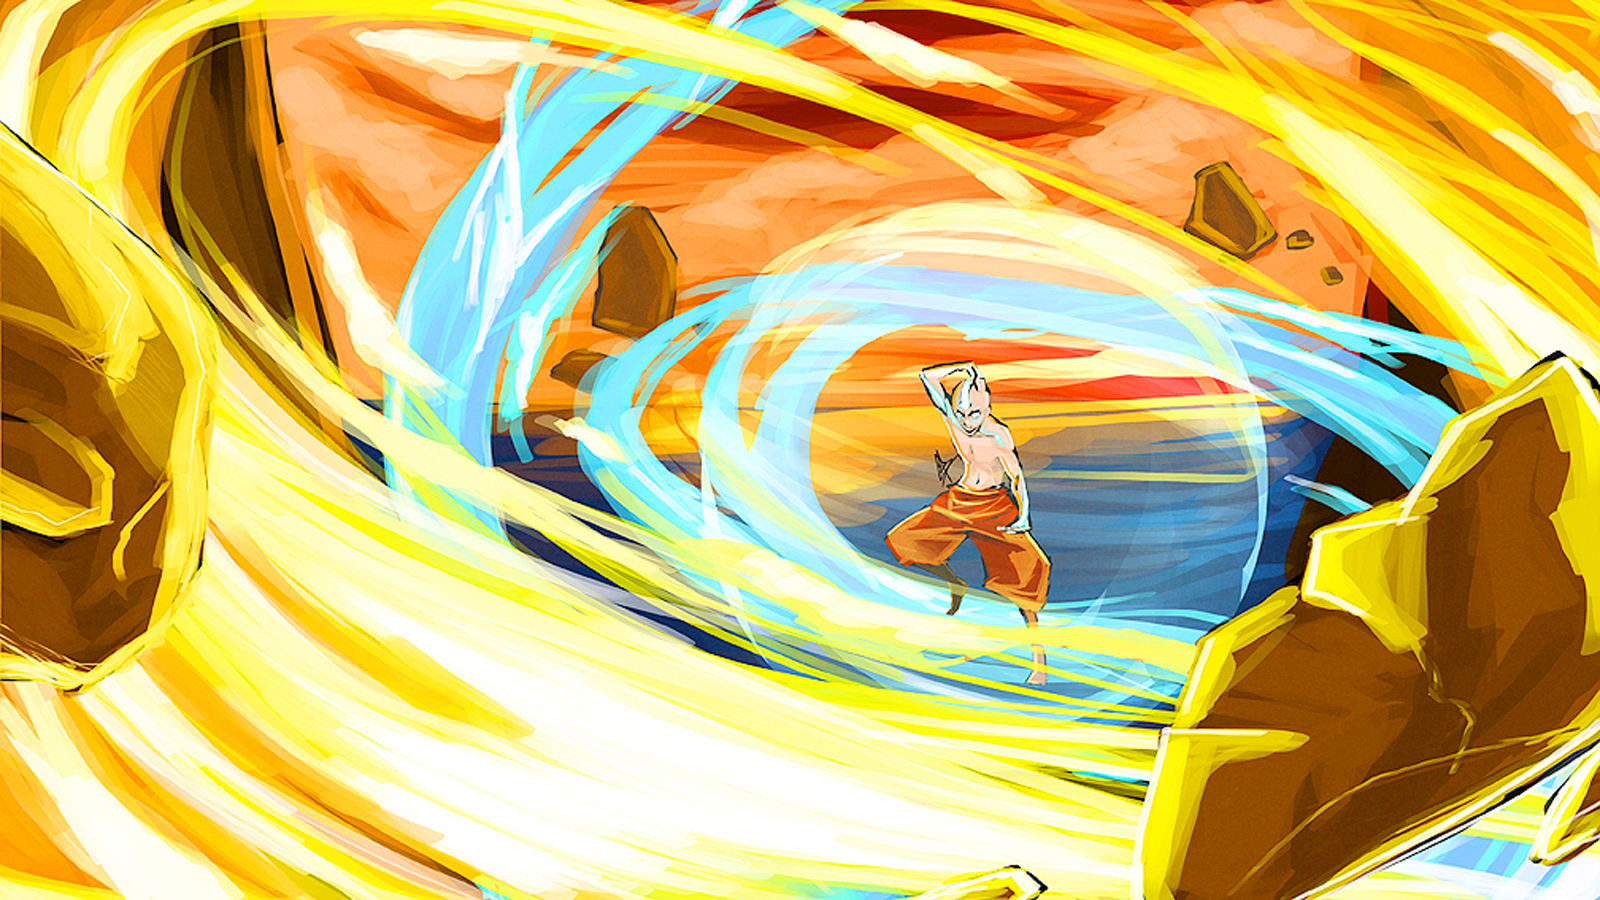 Free download Aang avatar State Avatar The Last Airbender ...